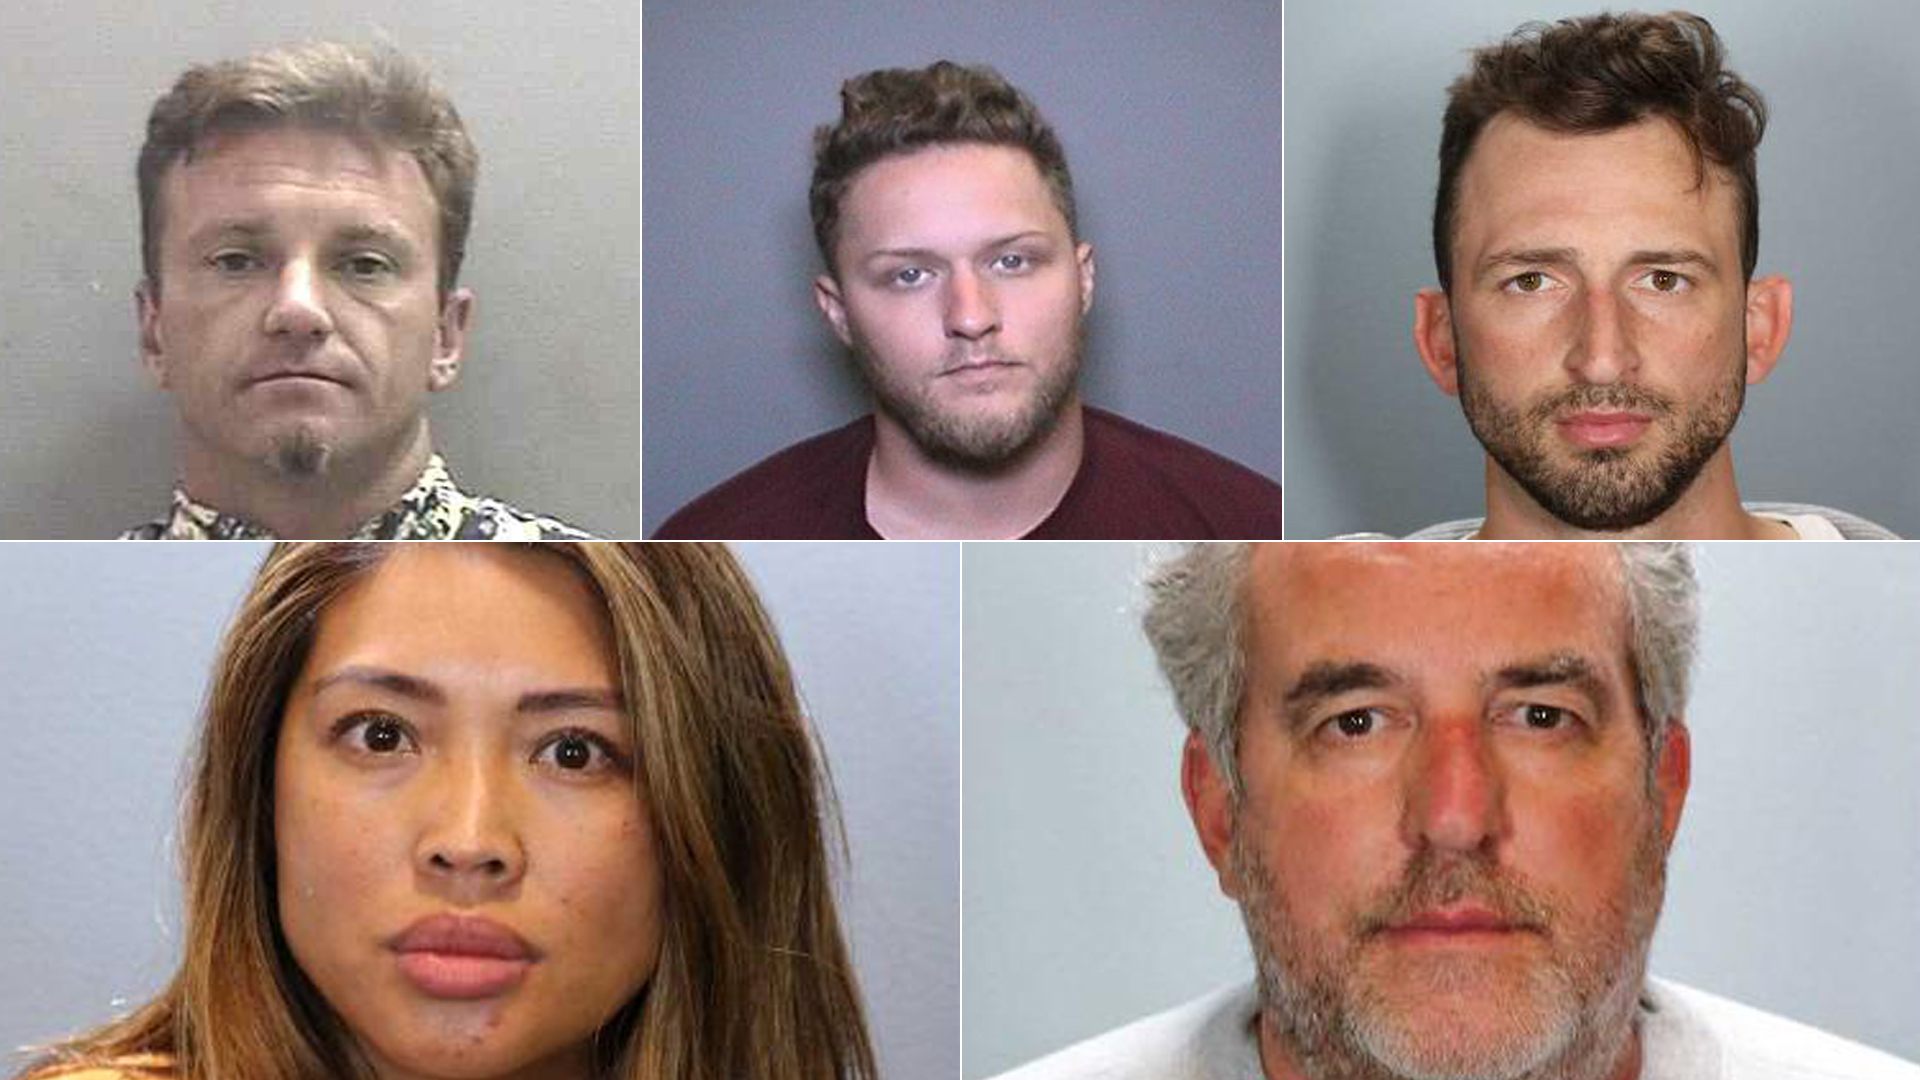 Top left to right: Robert Mellon, Patrick Connolly, Thomas Douglas, Liza Vismanos and Randy Rosen are shown in photos released by the Orange County District Attorney's Office on July 3, 2020.